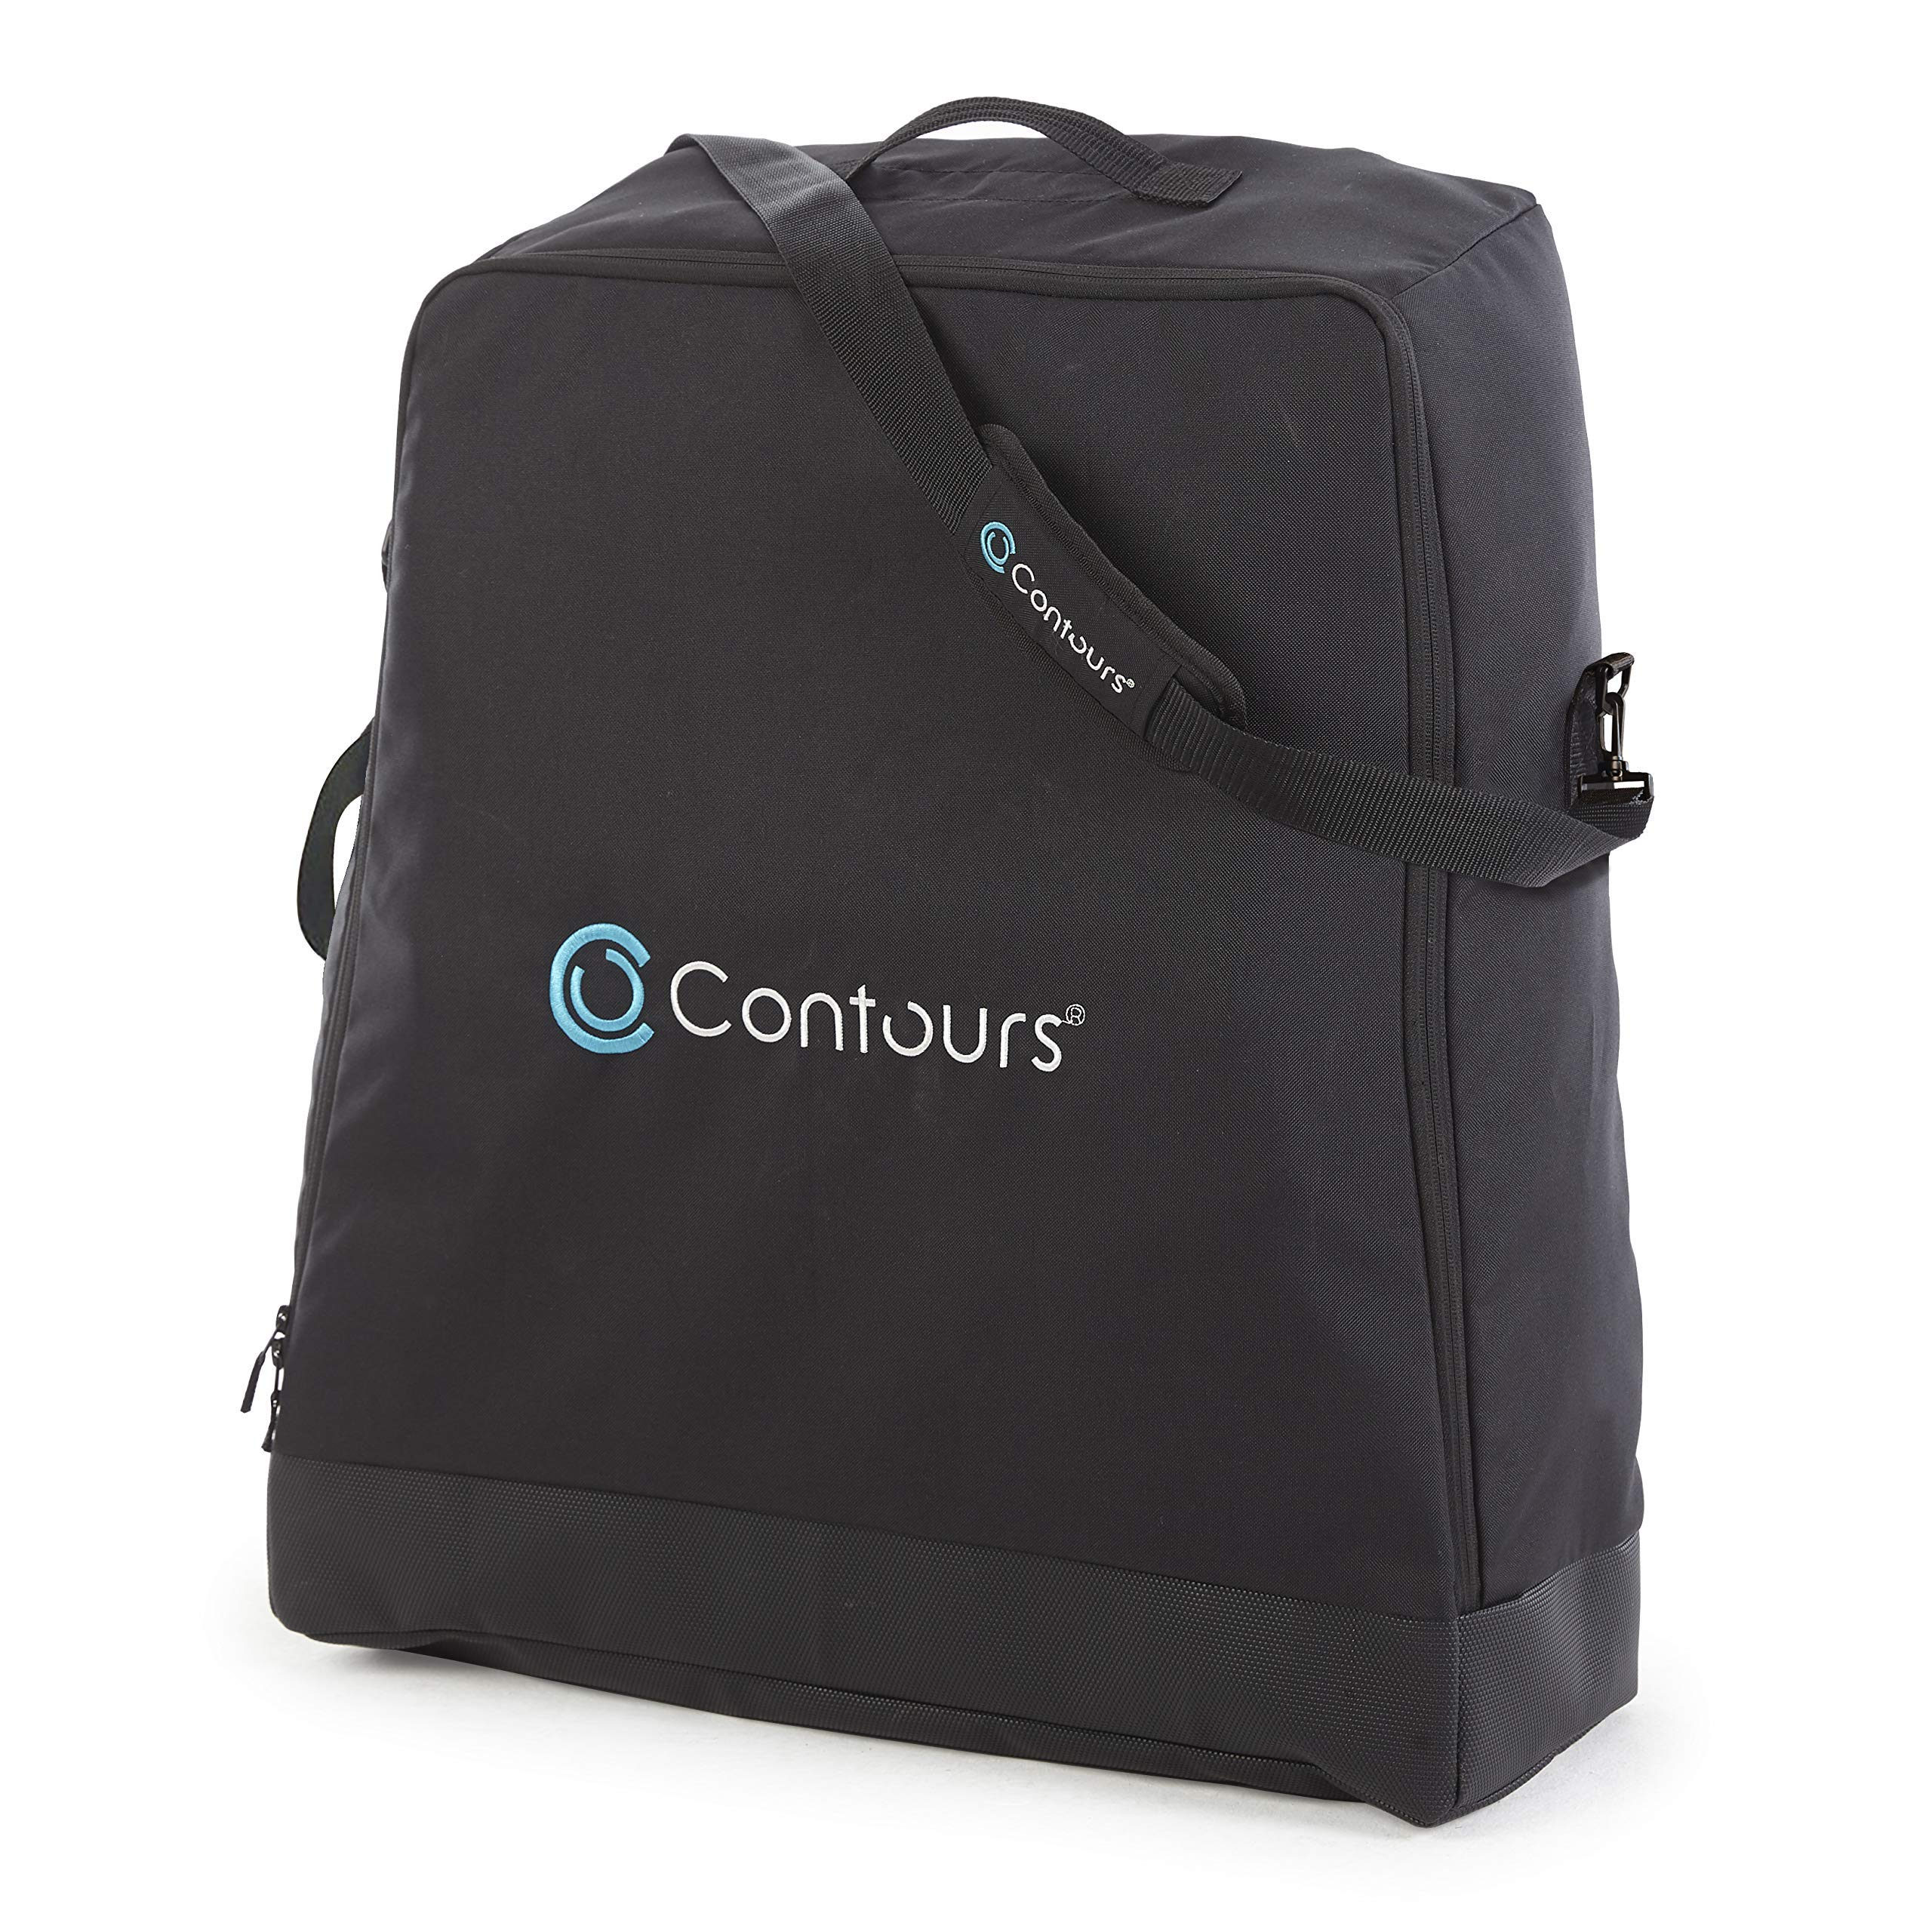 Contours Bitsy Compact Fold Lightweight Stroller Travel Bag, Black by Contours